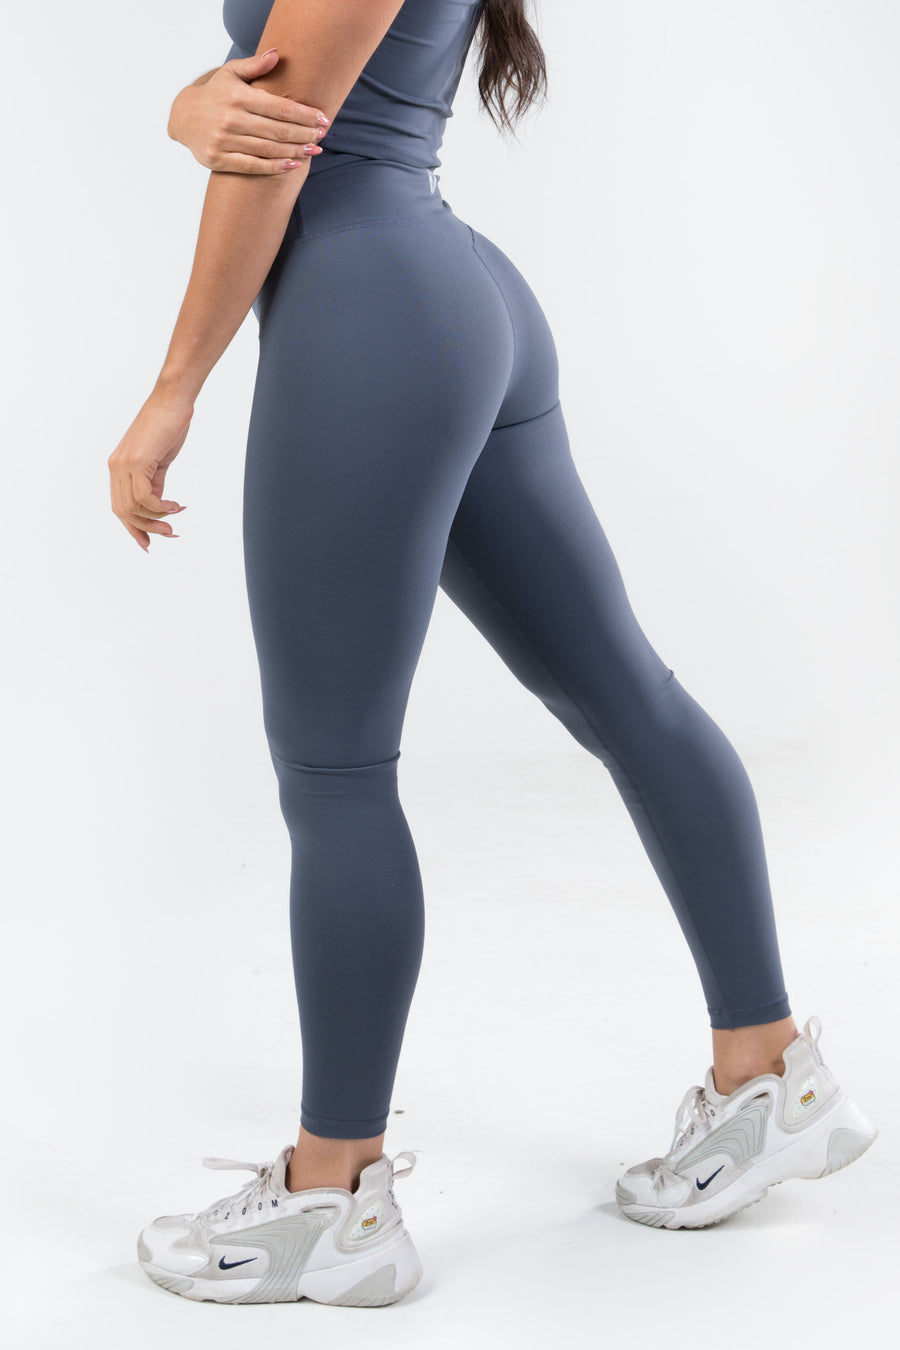 Sensation Leggings - Titanium Blue